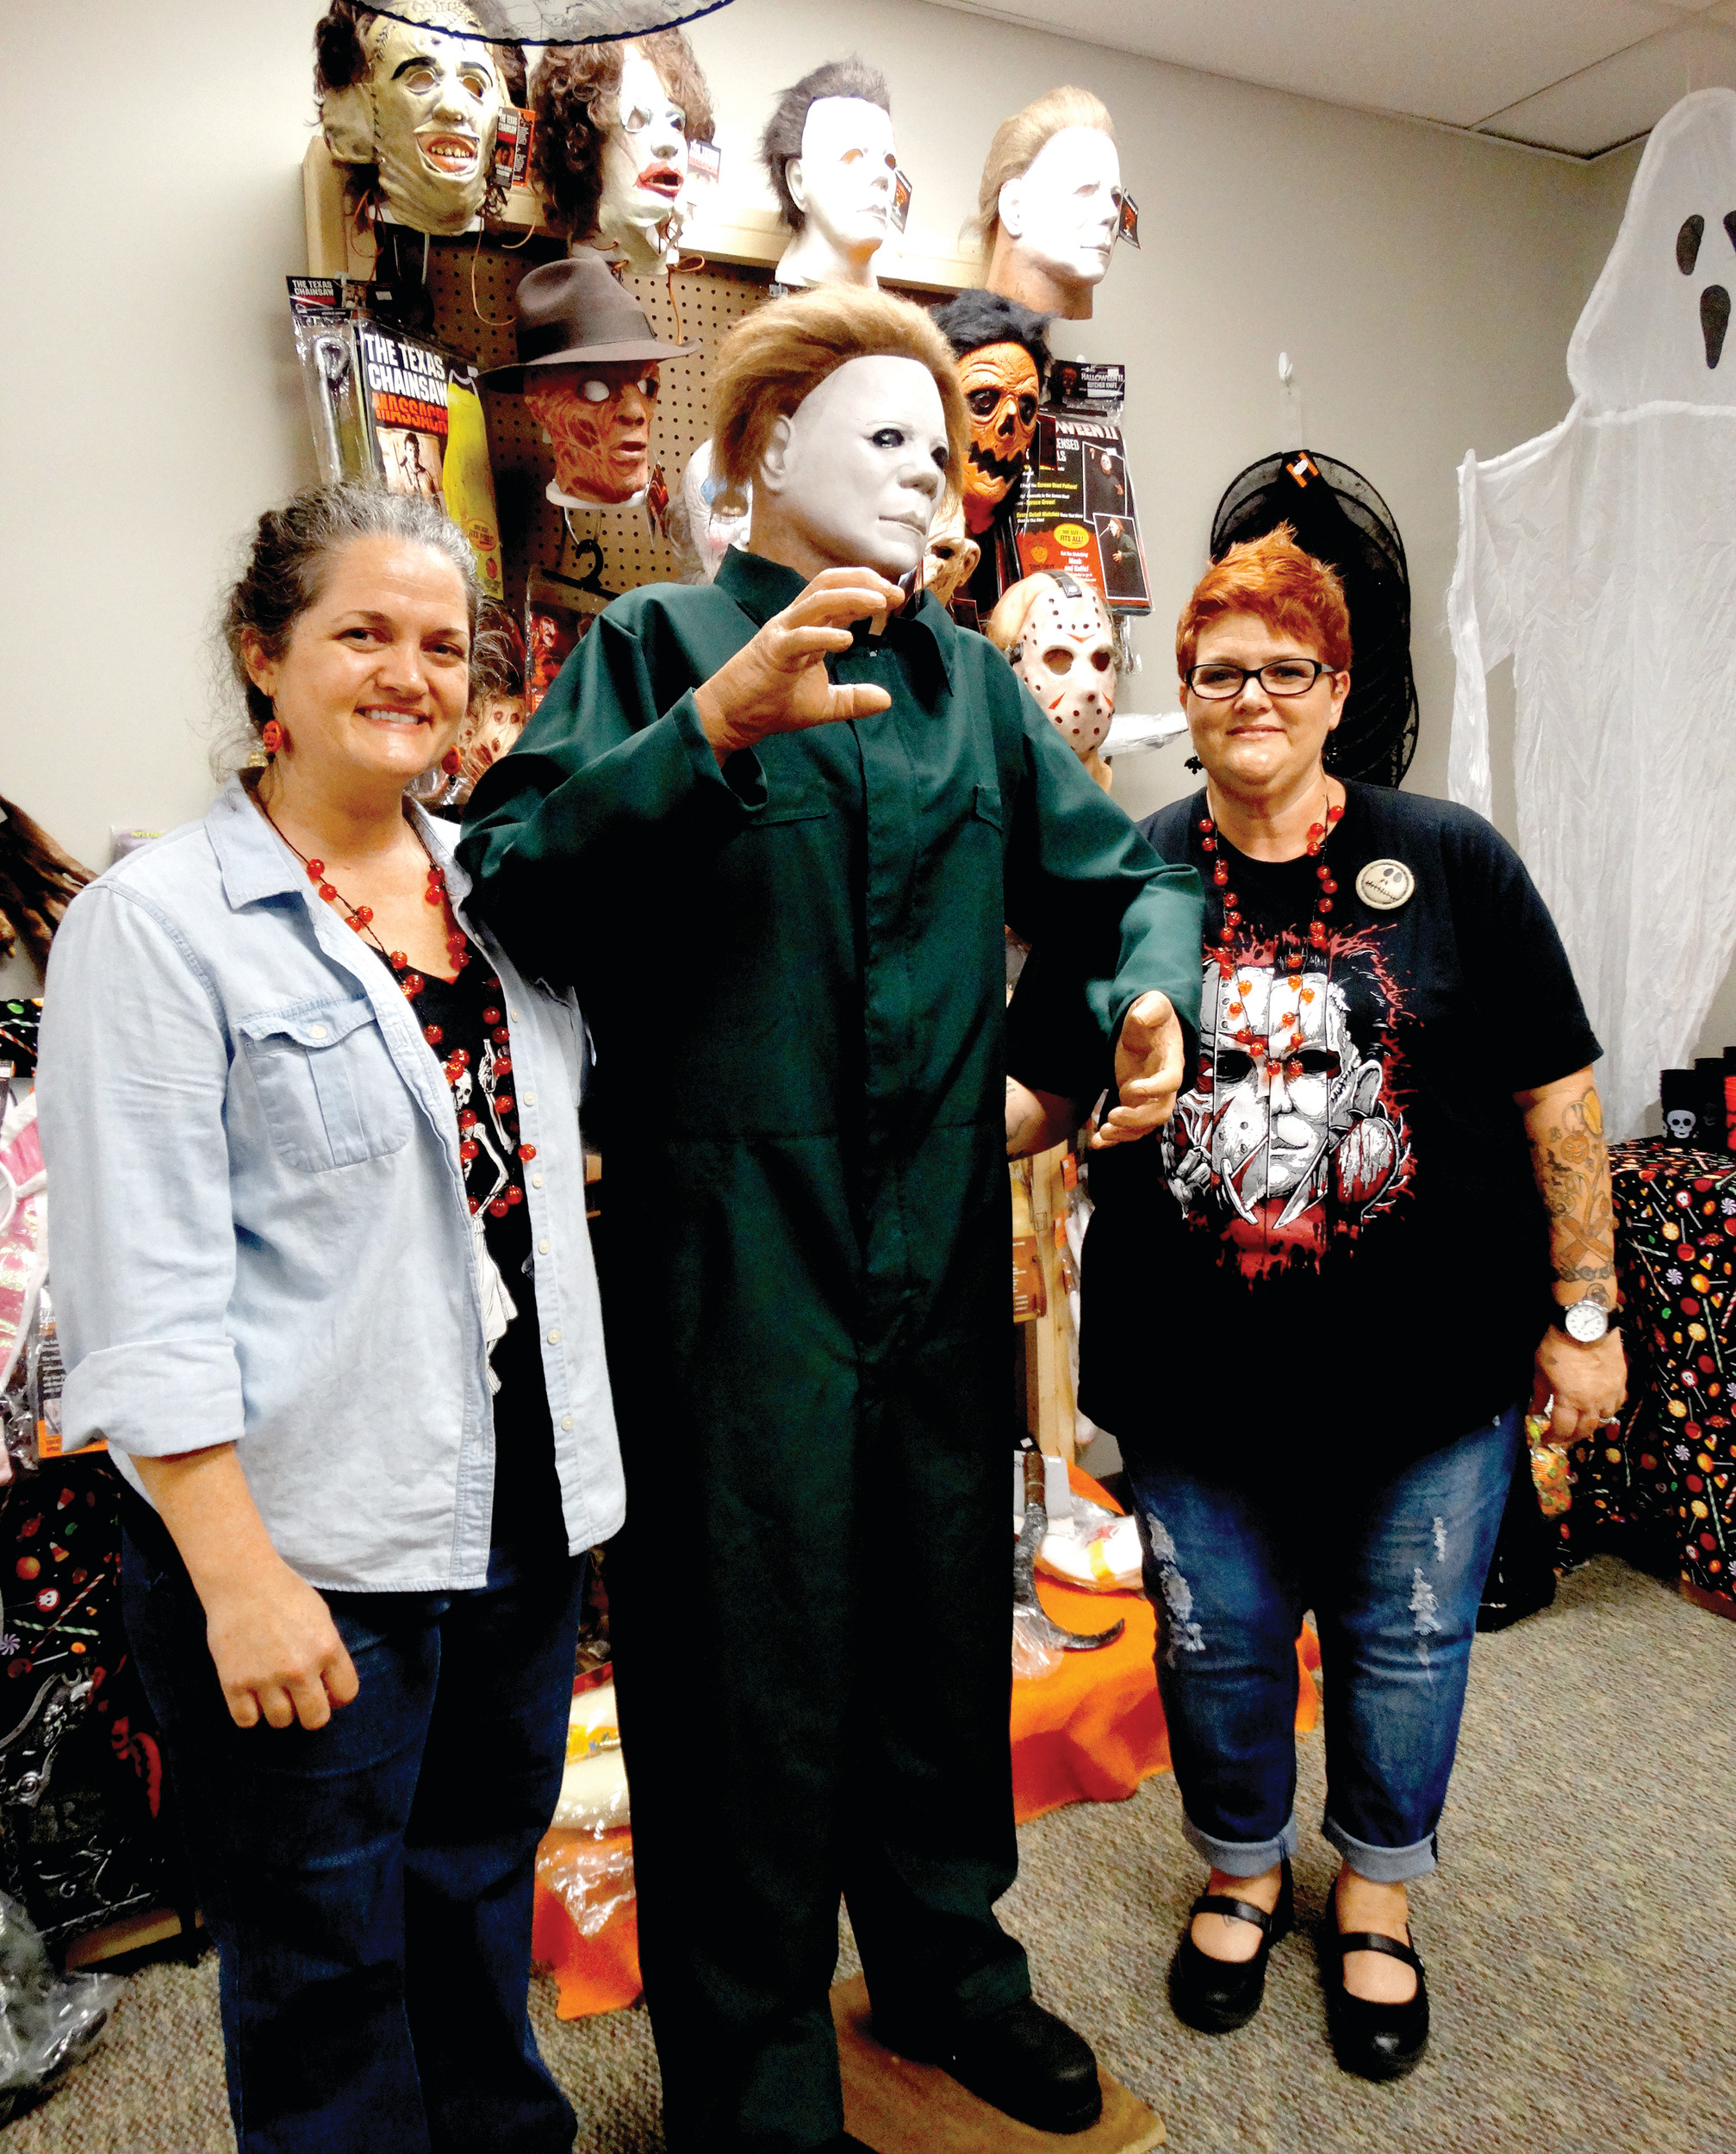 Melanie Lee, left, Michael Myers, center, and Miranda Johns, far right, pose for a picture on the day of the grand opening of M and M's Lil Shop O' Horrors on Tuesday. The shop, located on West Liberty Street, sells a variety of Halloween costumes and decorations as well as fall and Thanksgiving items.